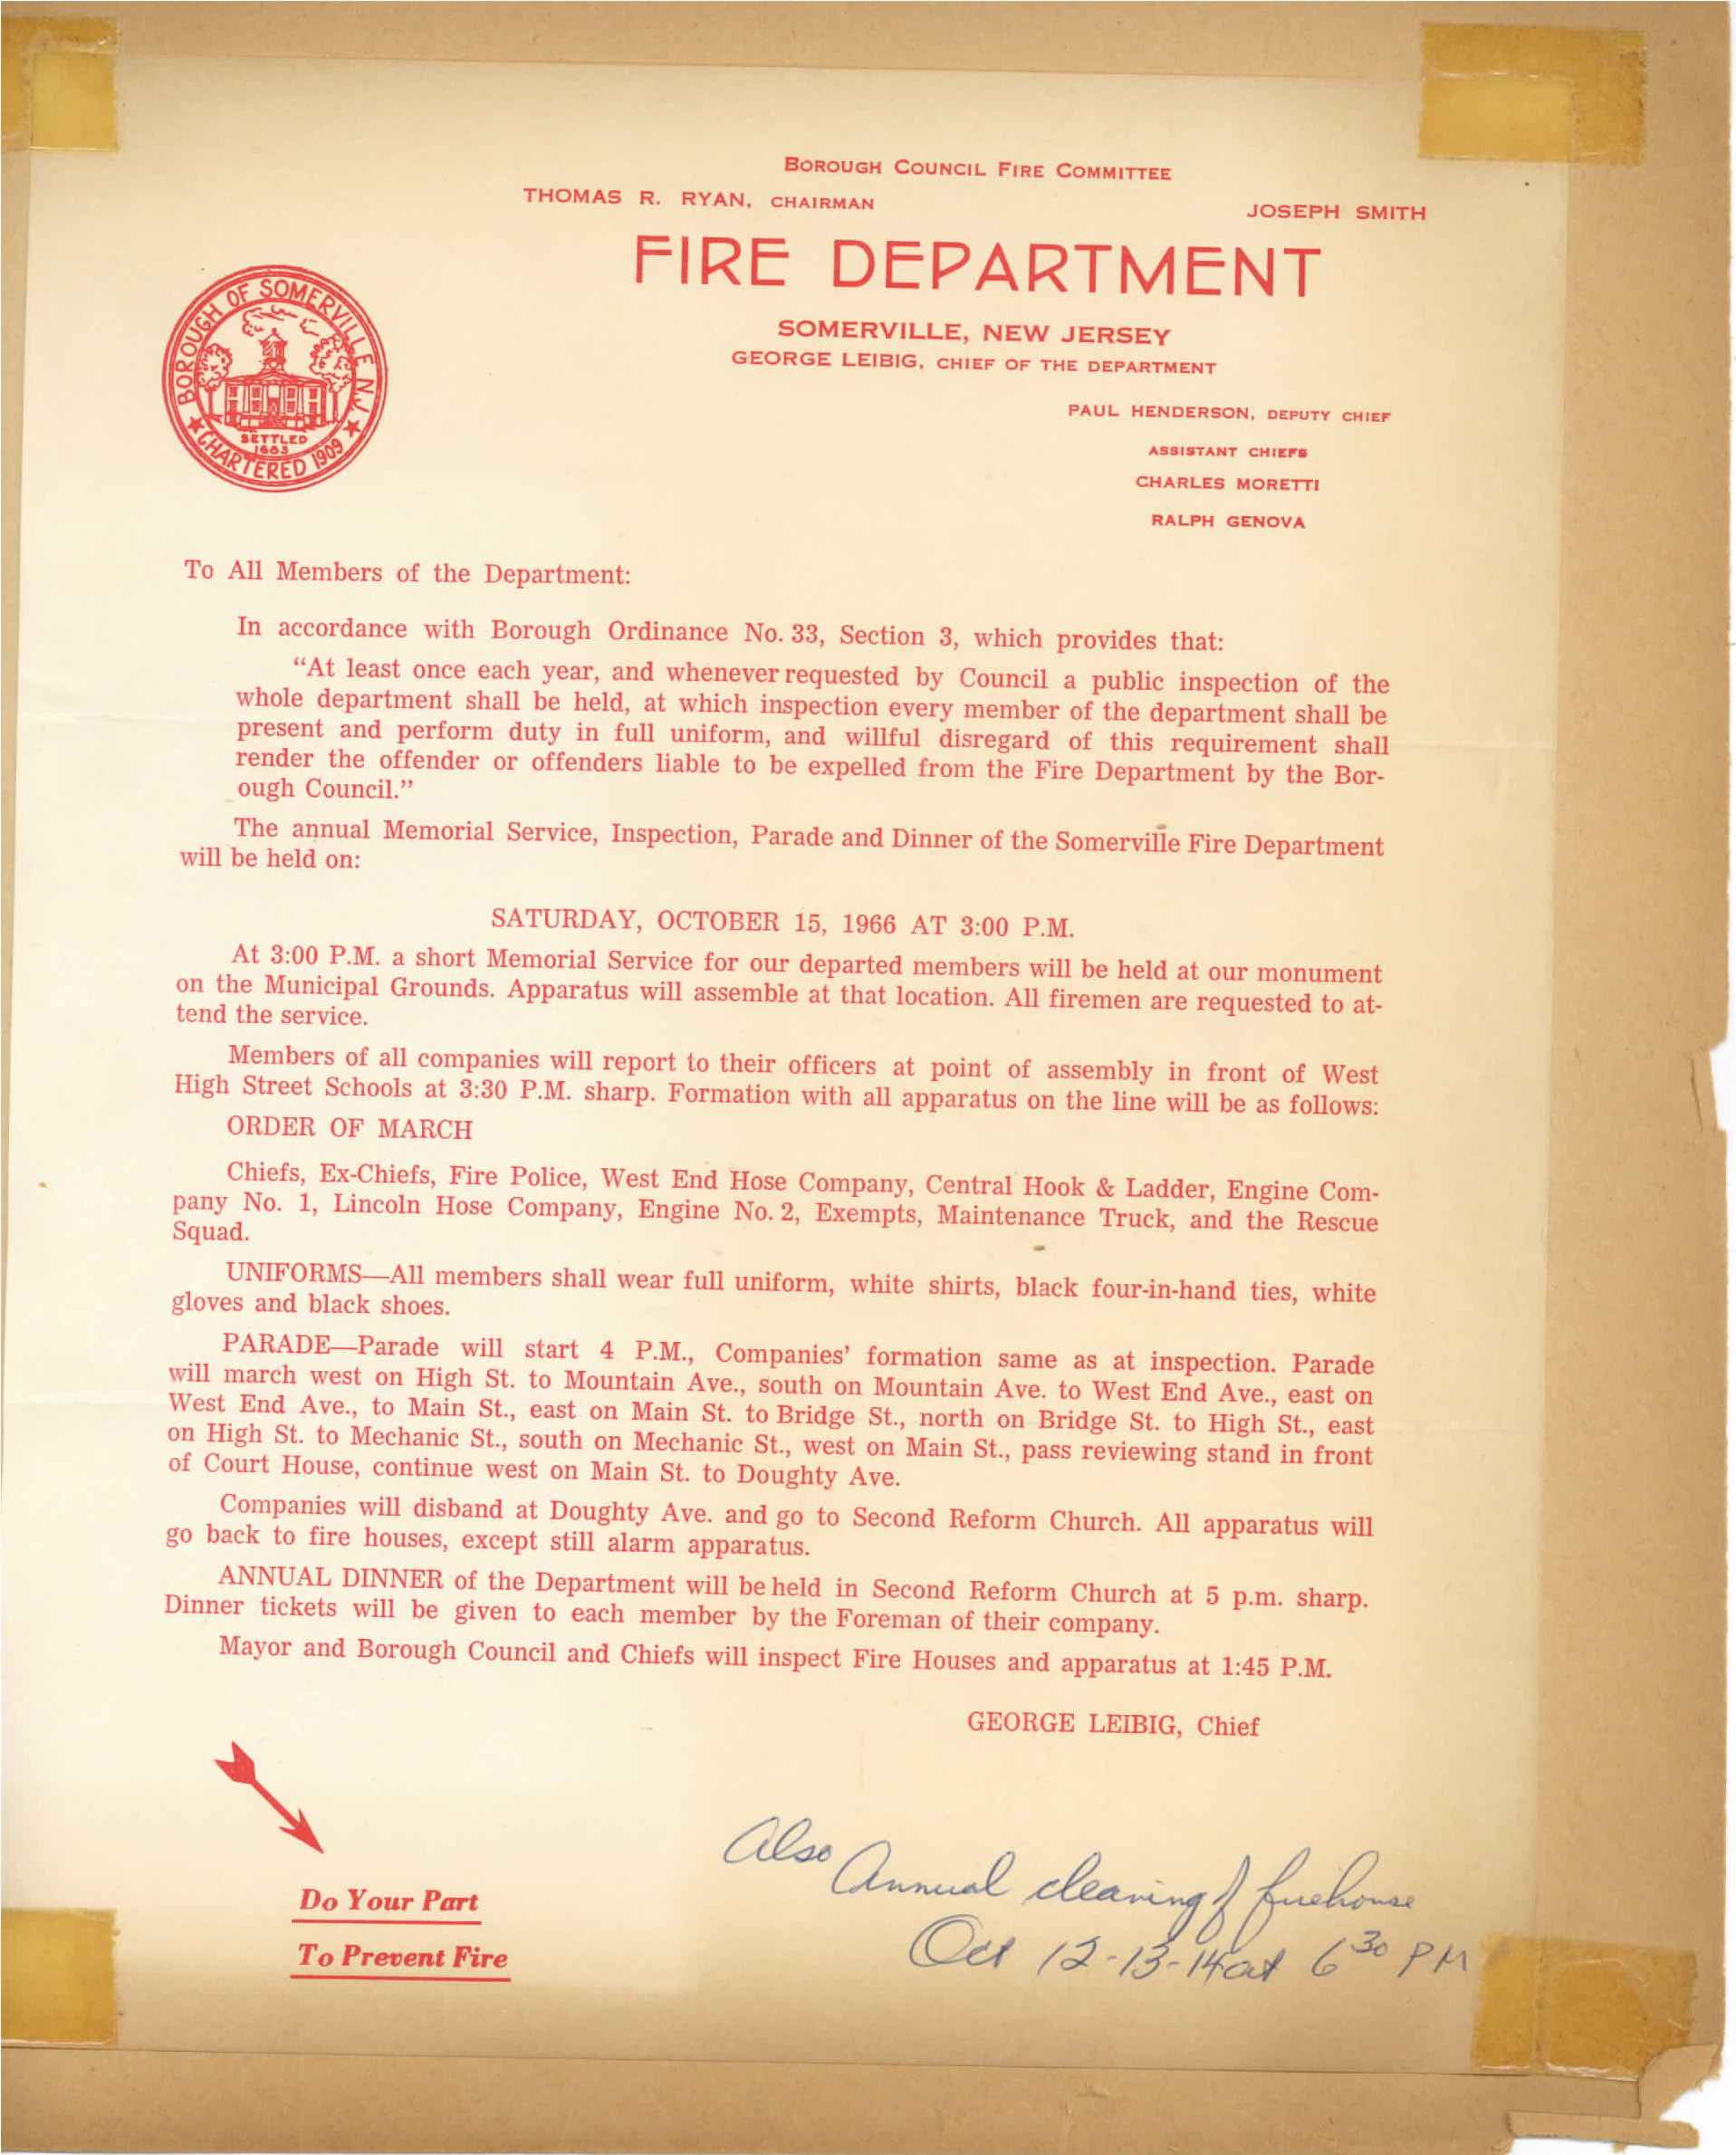 1966 Inspection Day Memo_Page_1_Image_0001.jpg